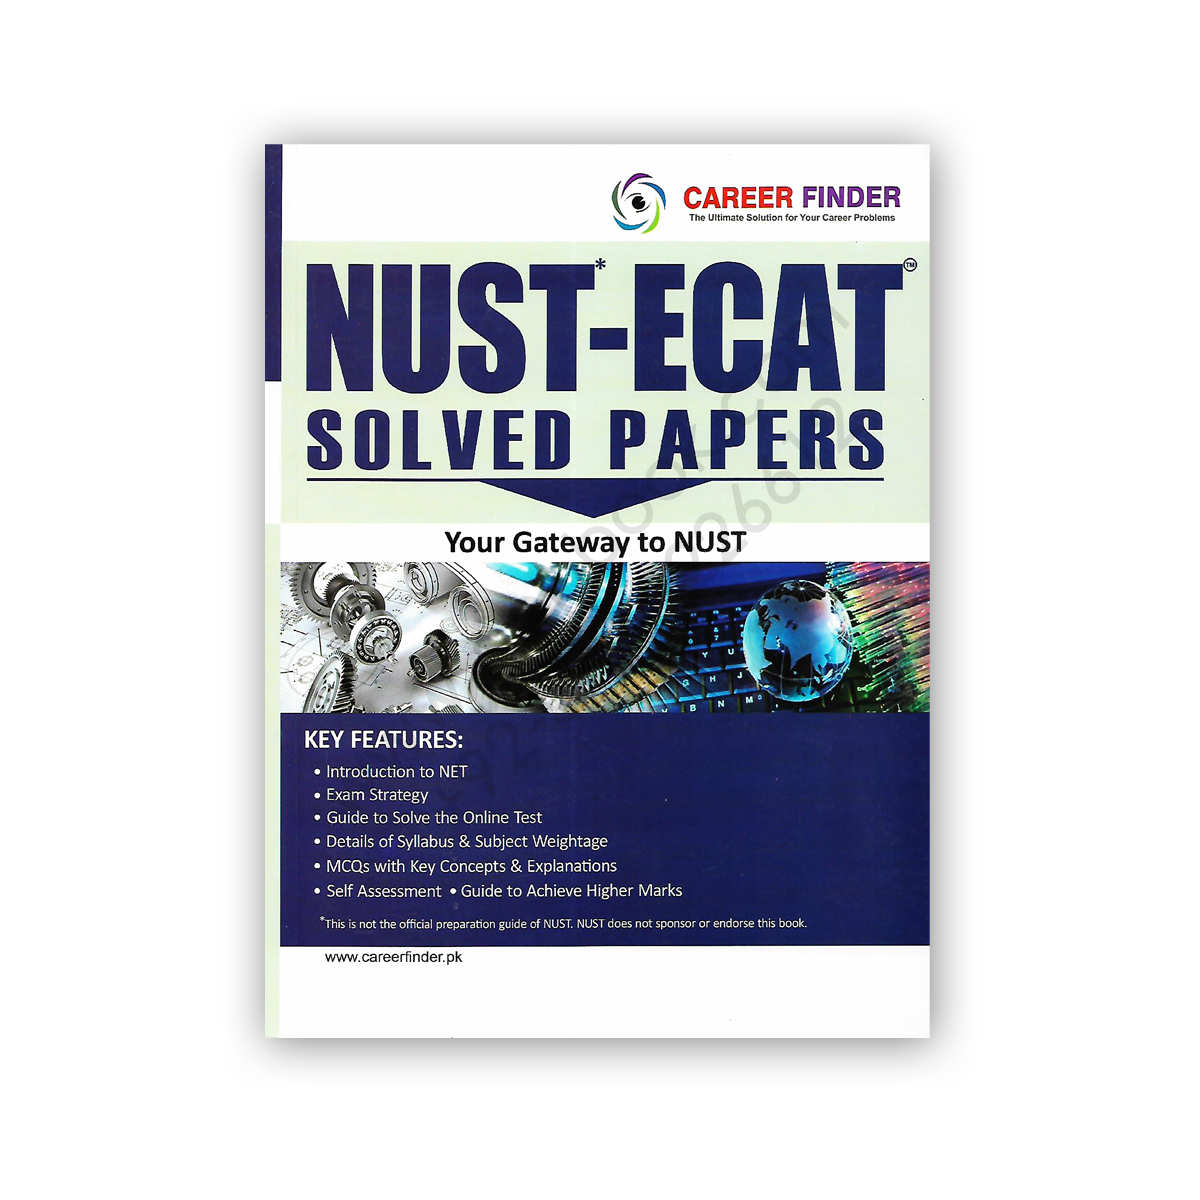 Career Finder NUST ECAT Solved Papers Your Gateway To NUST